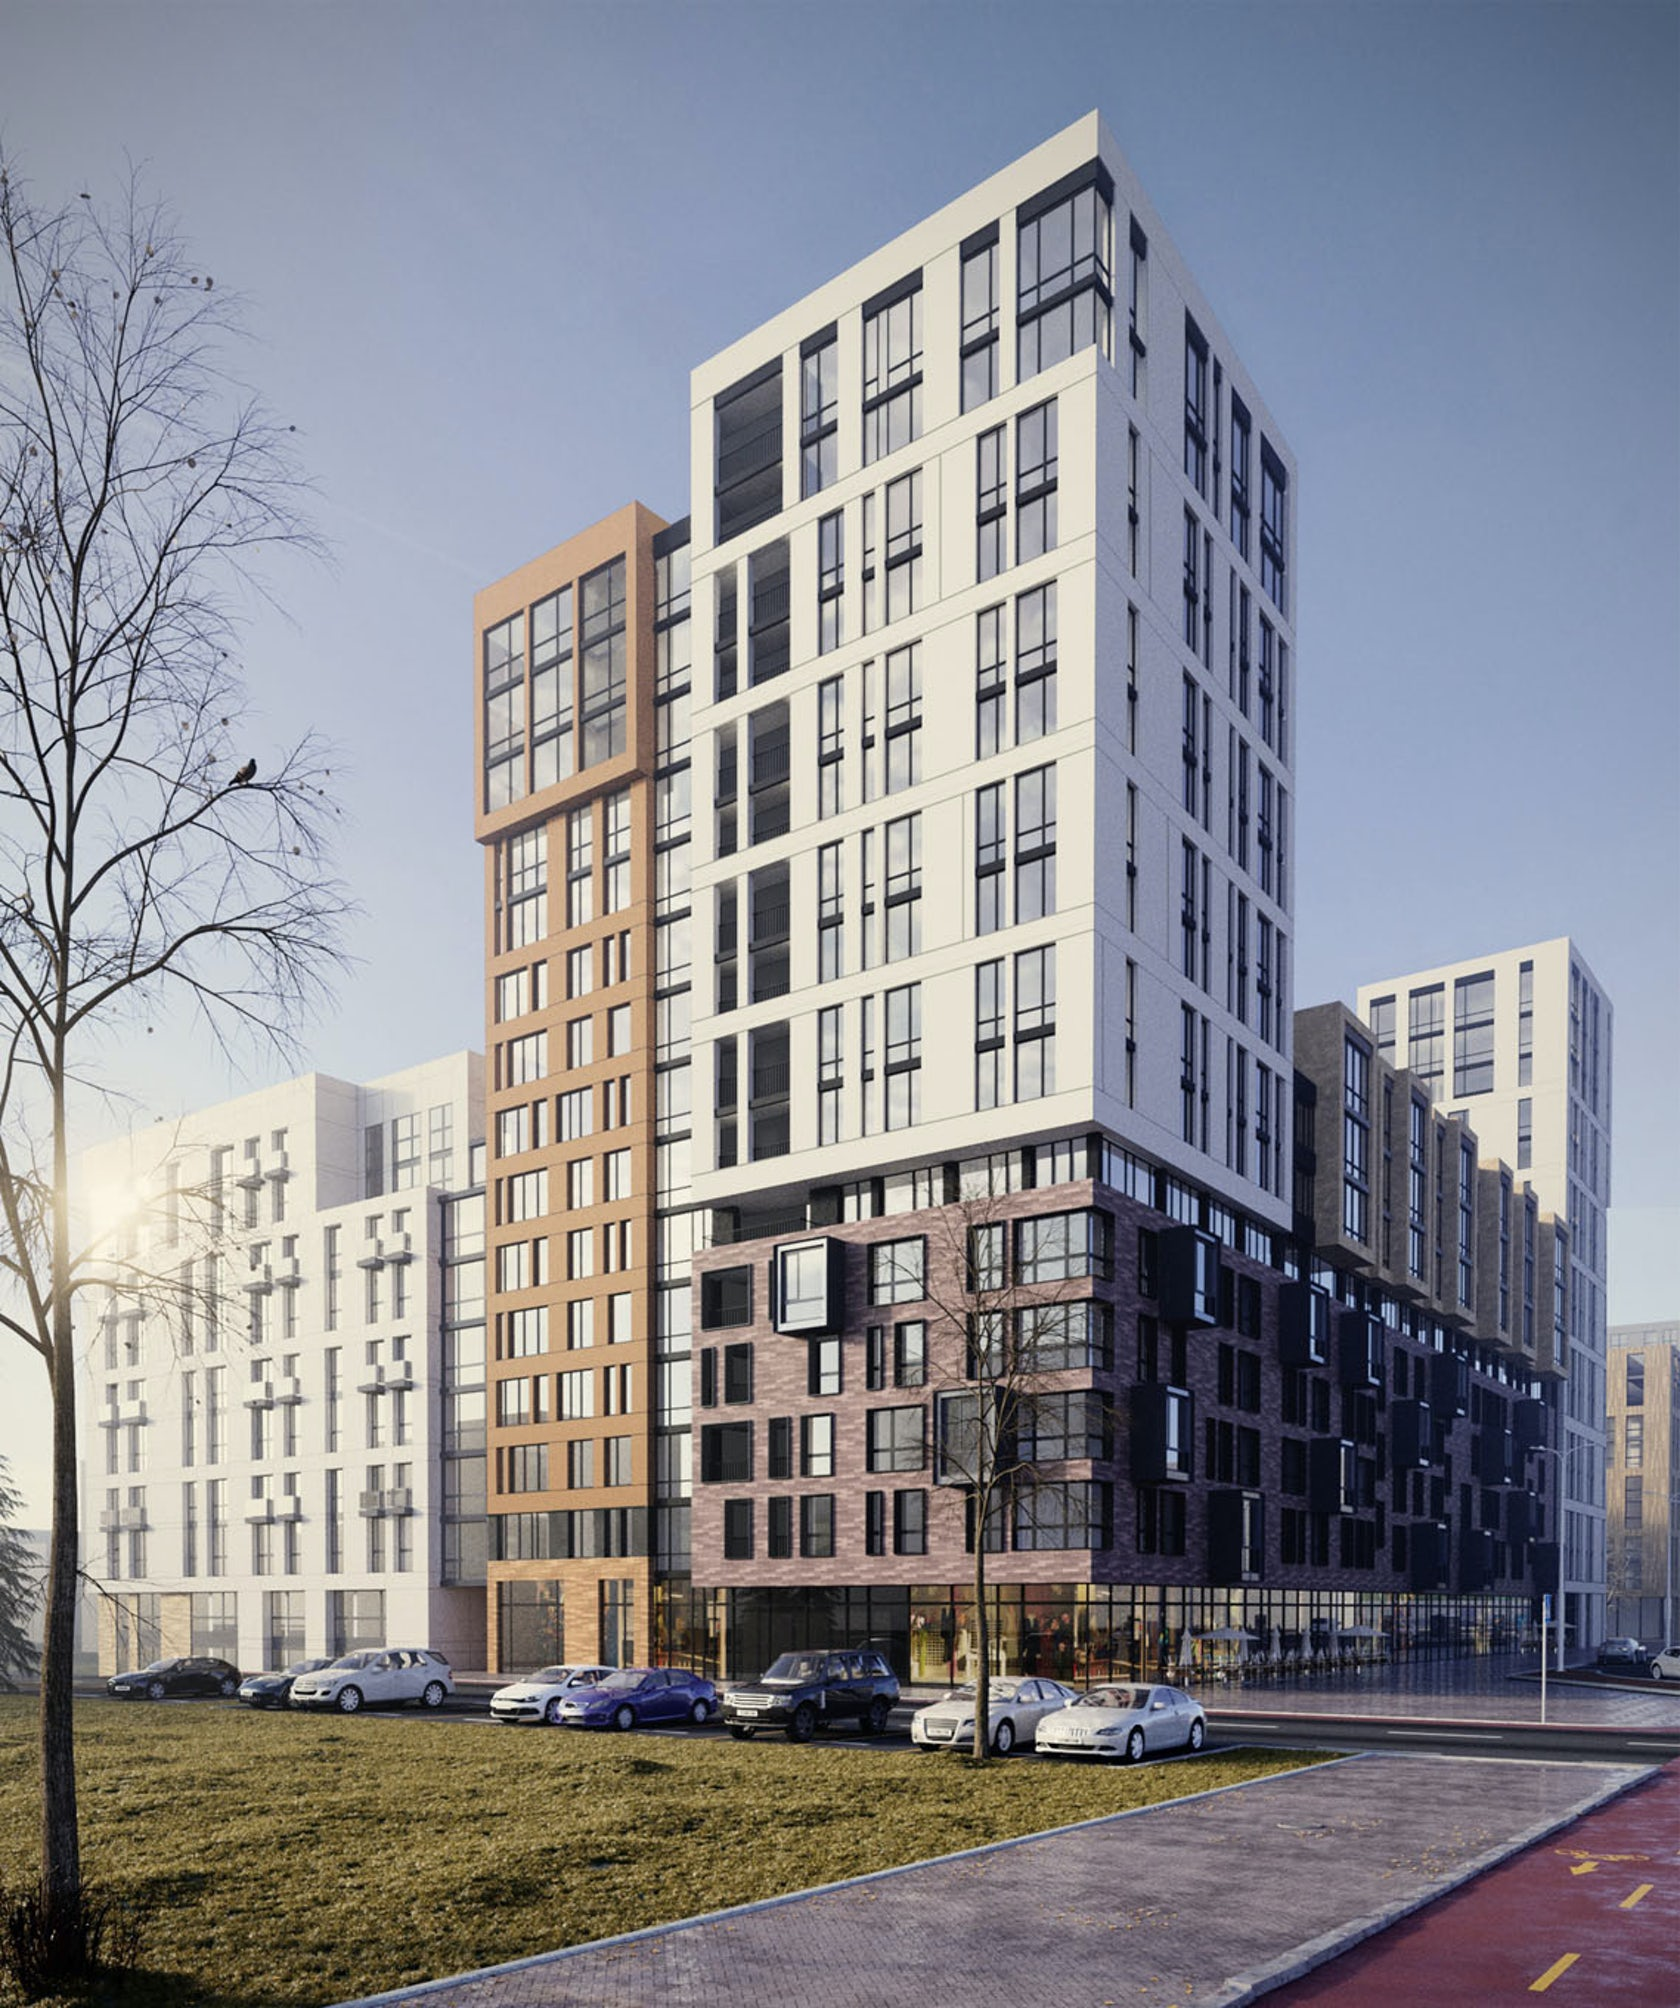 Townview Apartments: Architizer